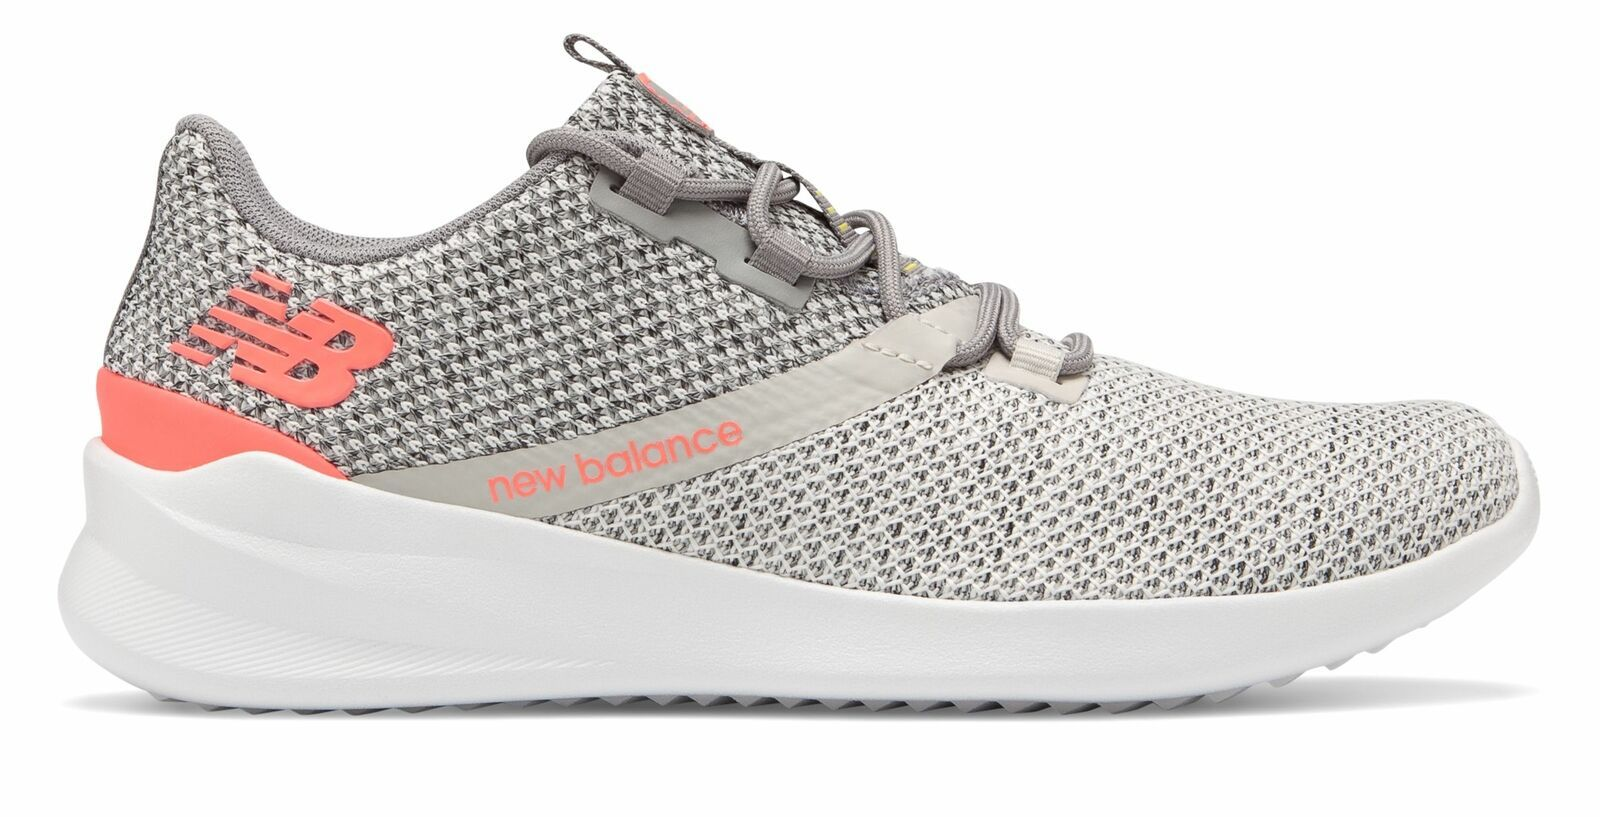 New balance sneakers, Womens running shoes